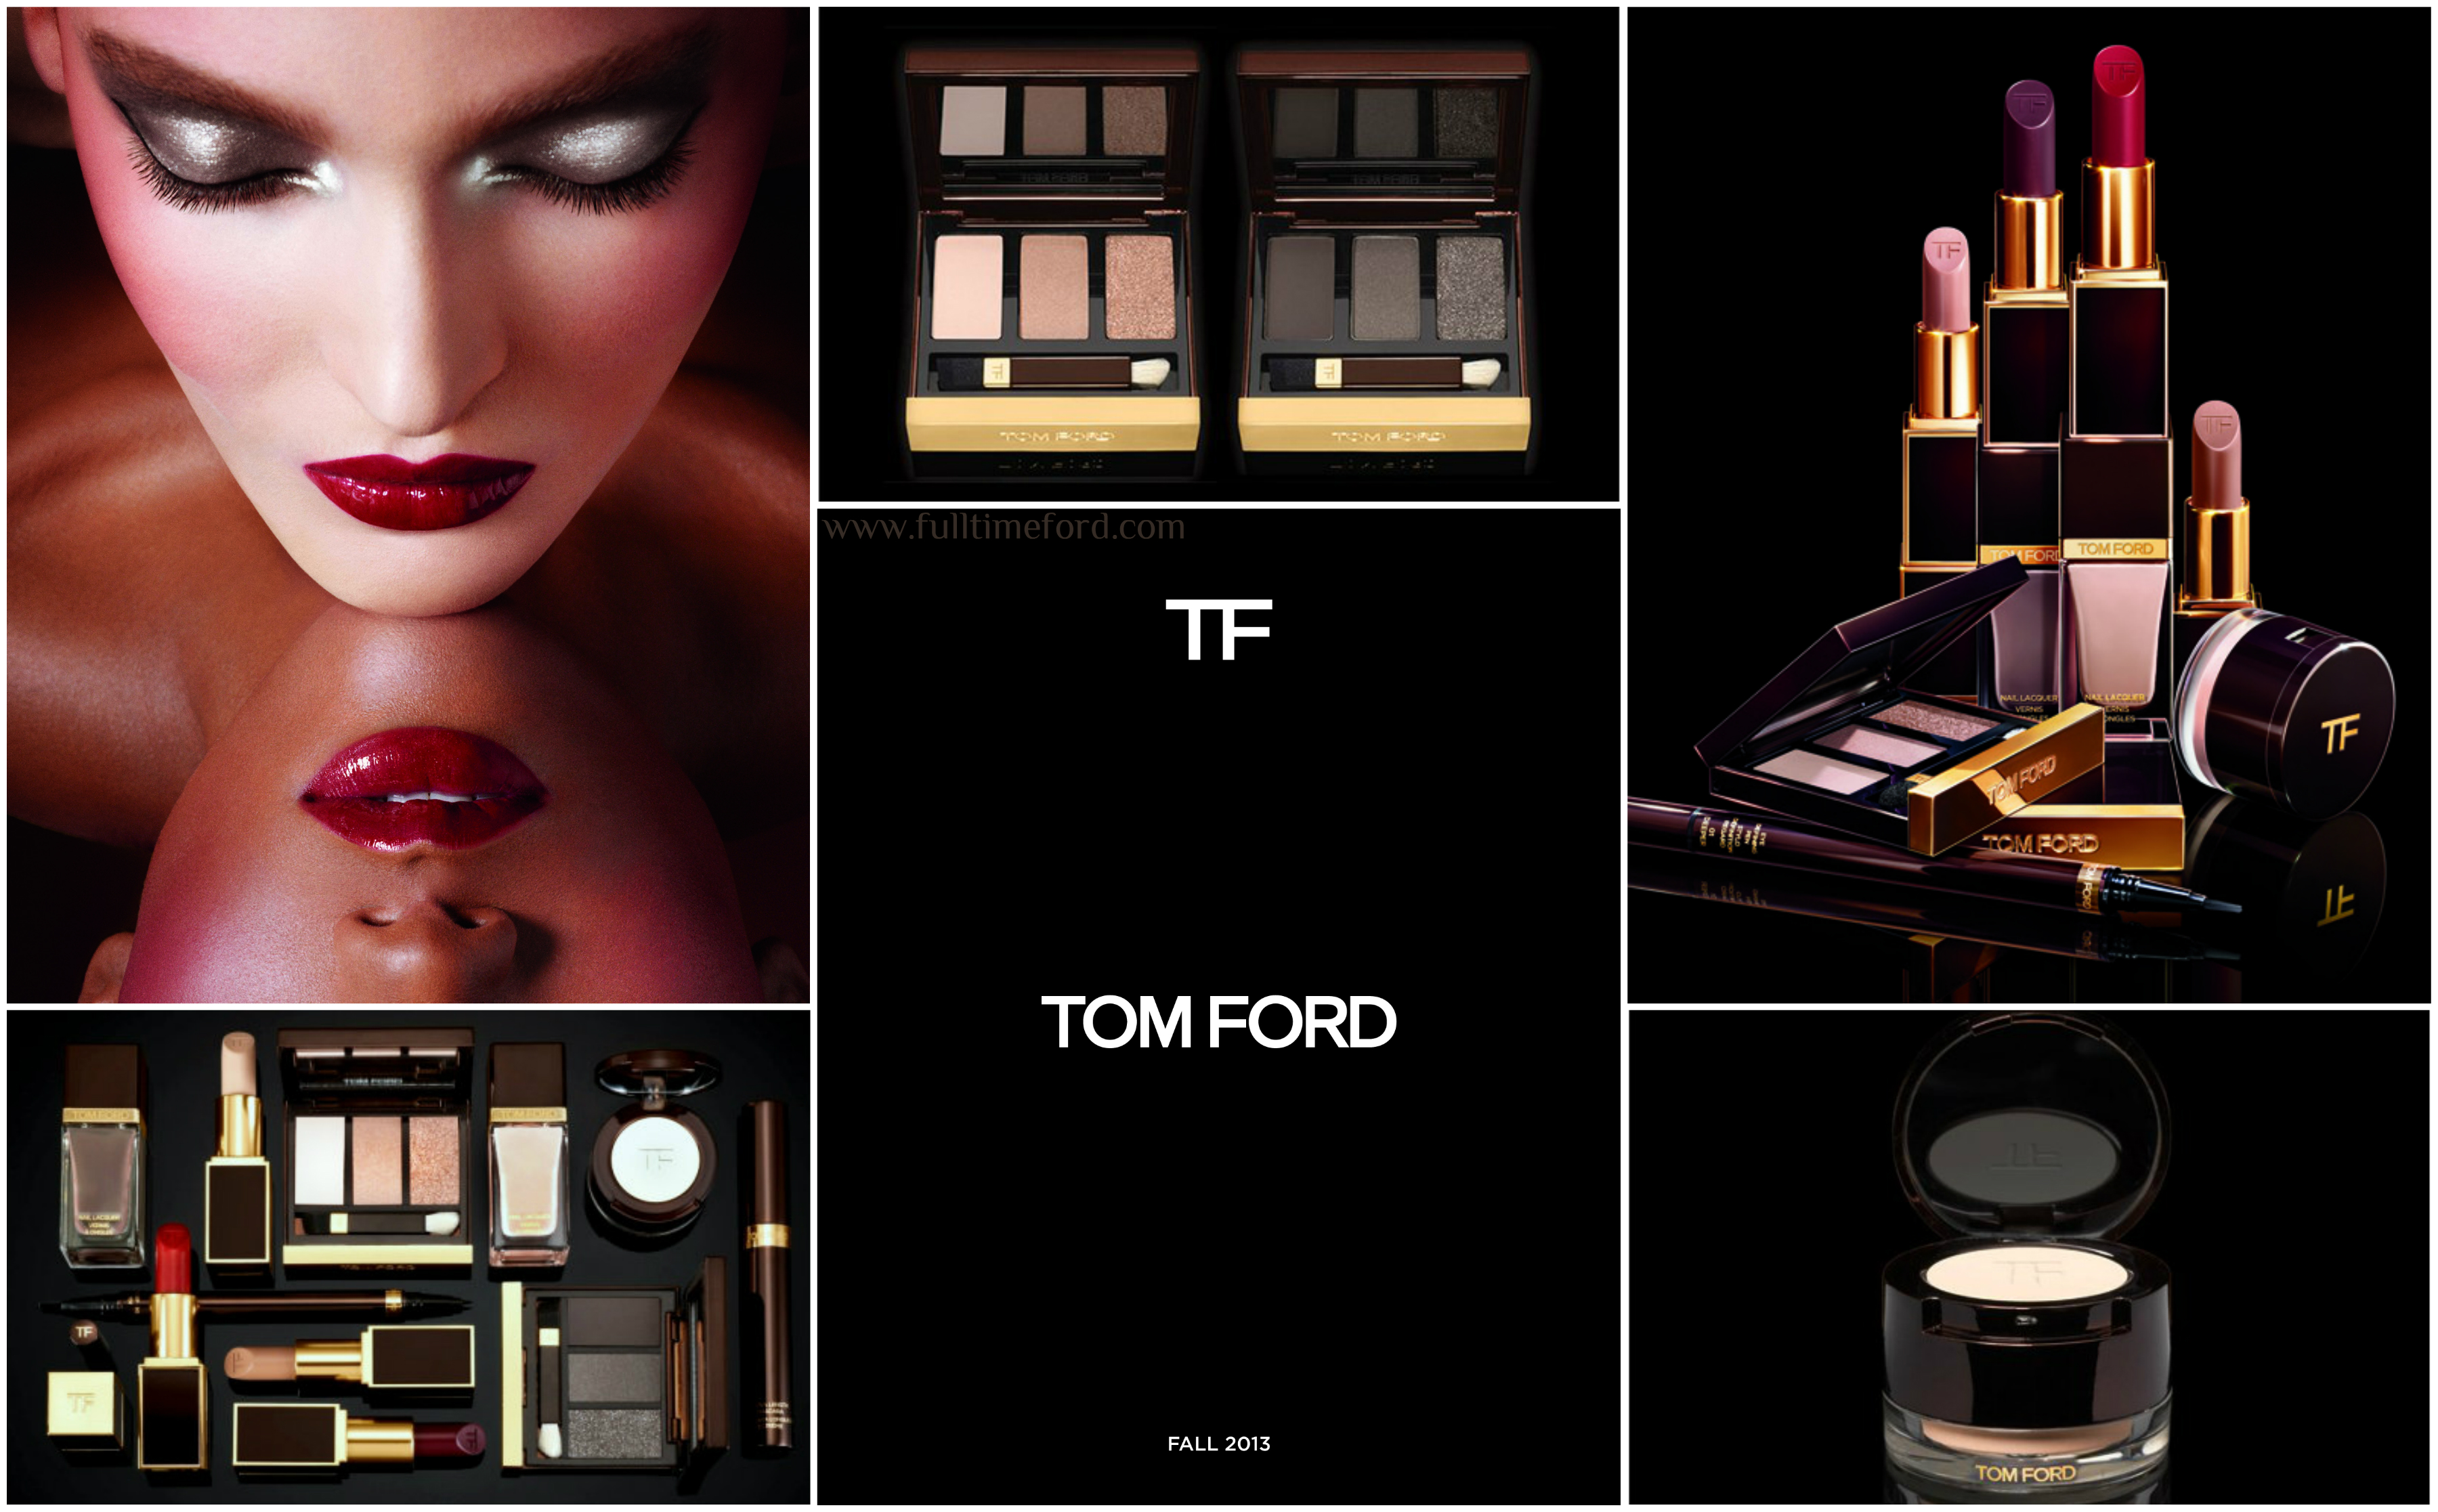 Sneak Peek: TOM FORD Beauty Fall 2013 Collection & Ad ...